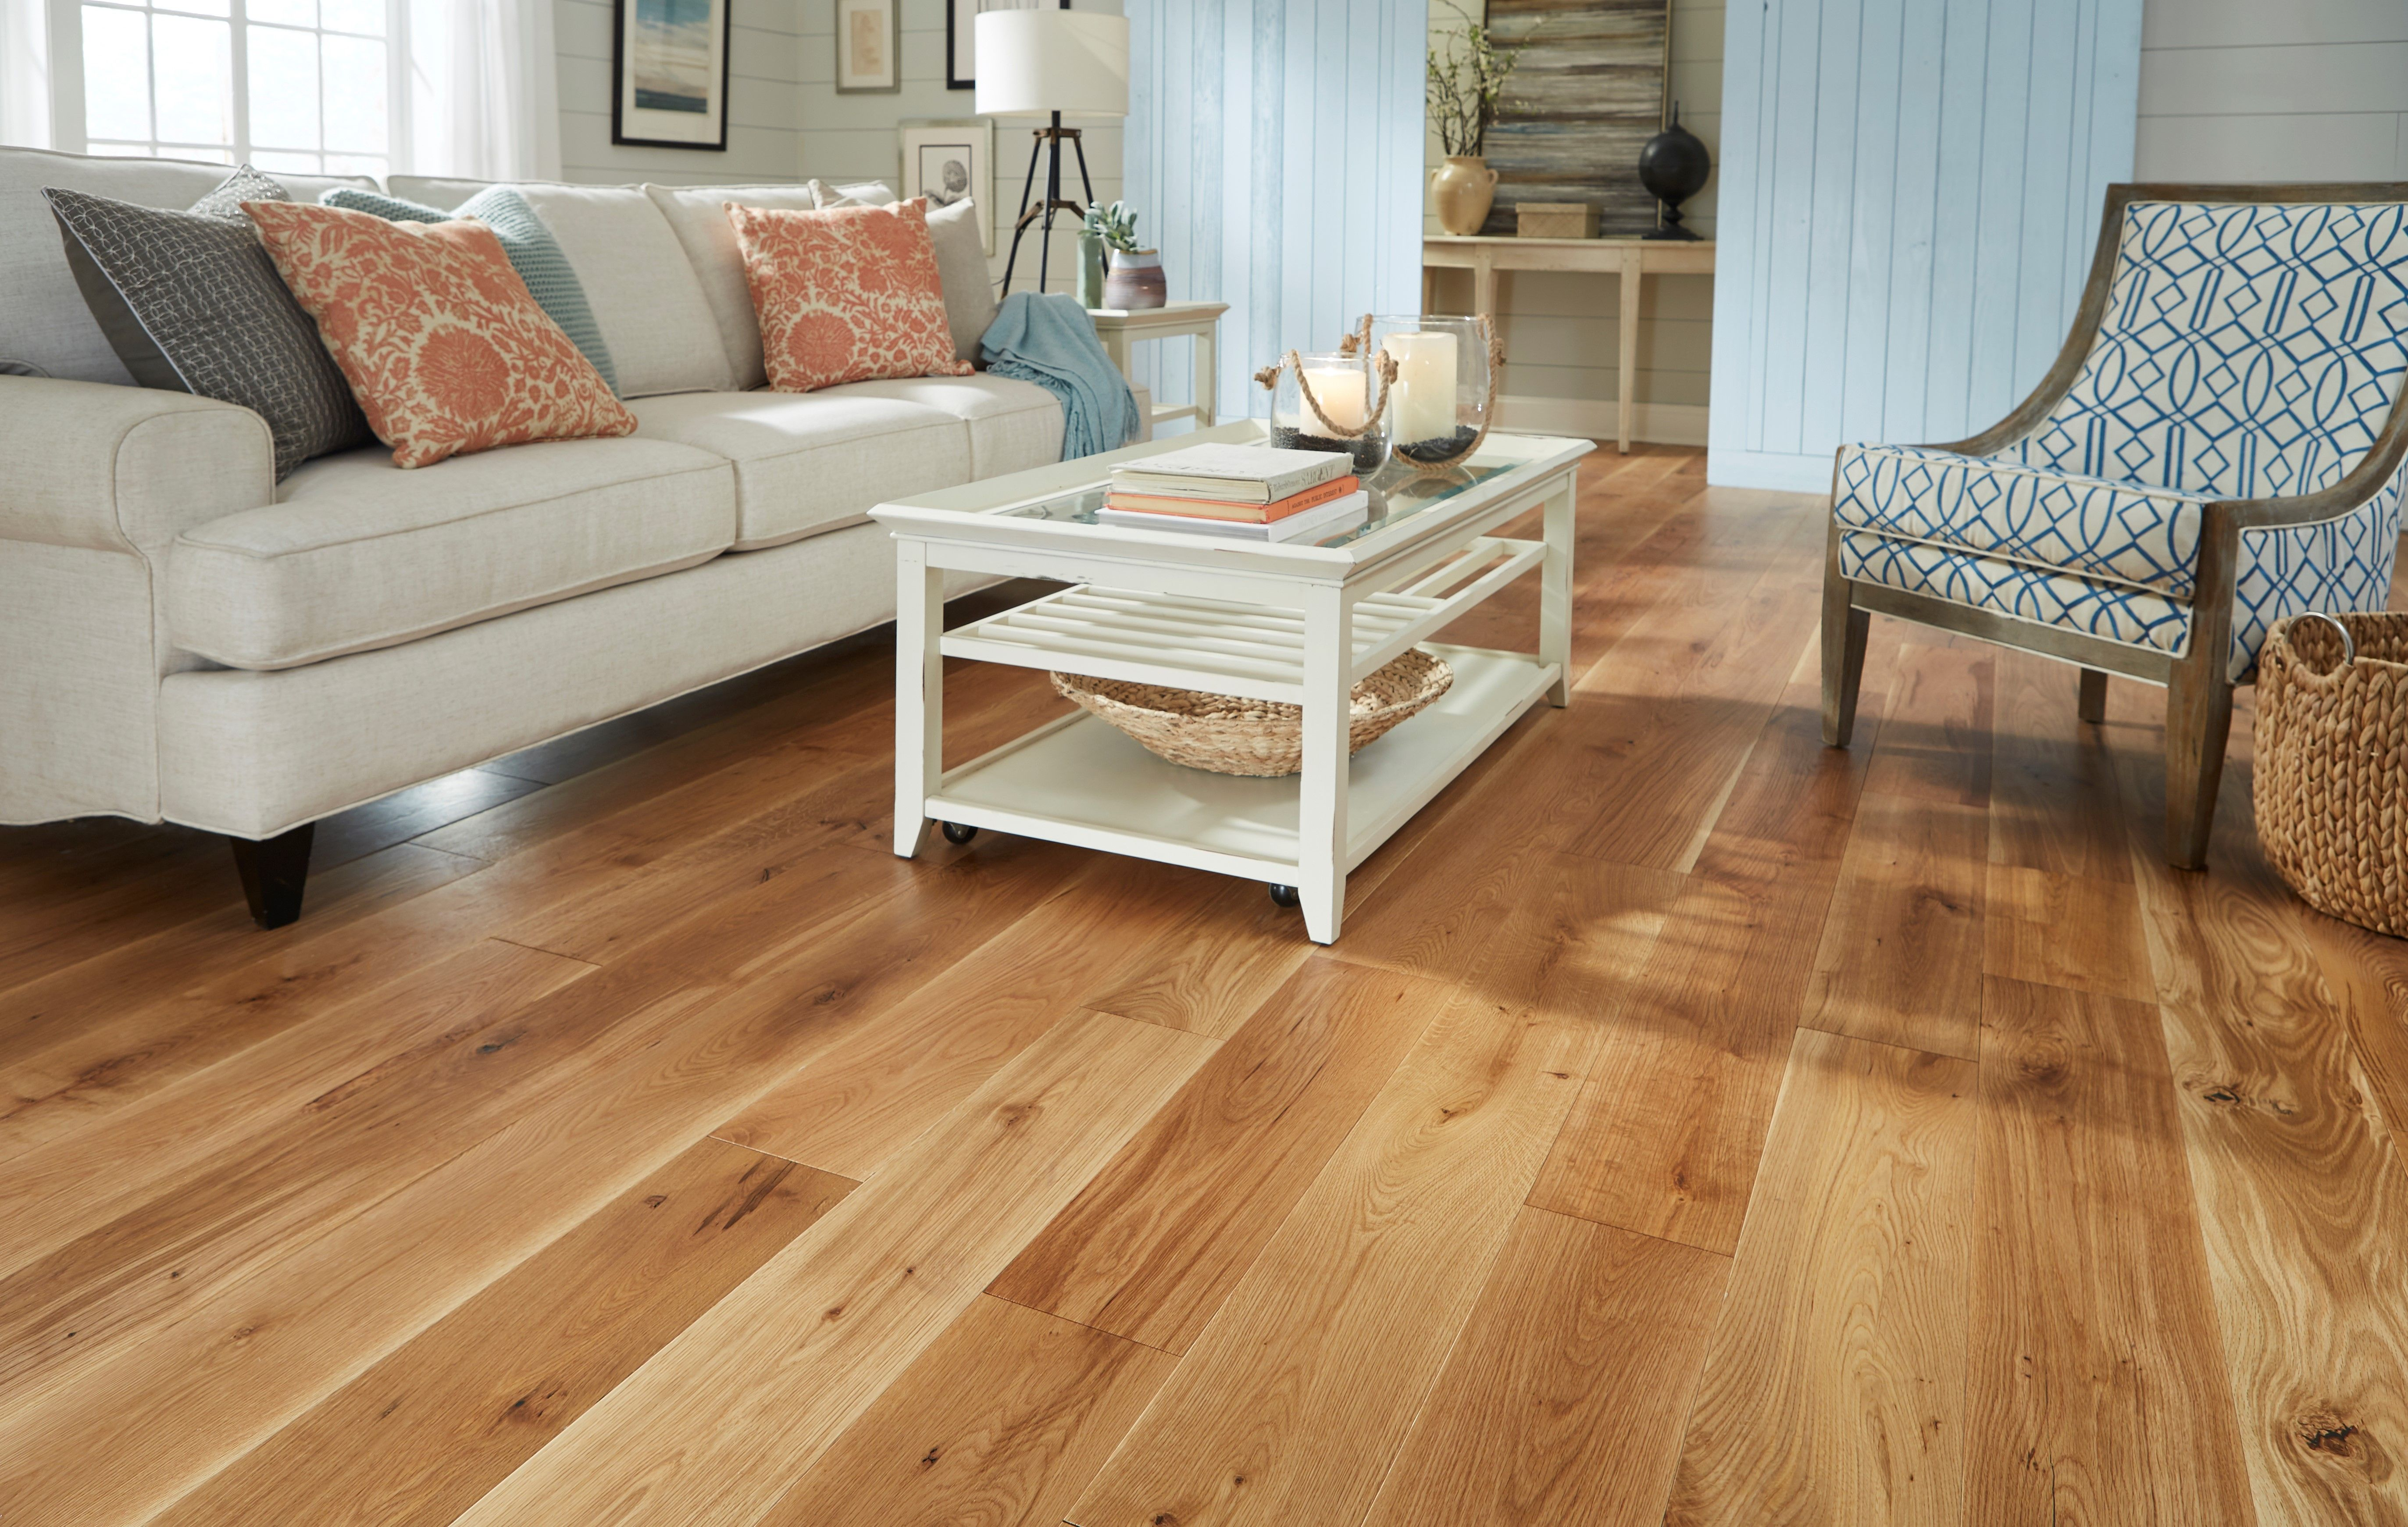 Wexford Engineered Eurosawn In White Oak Natural Available In Six